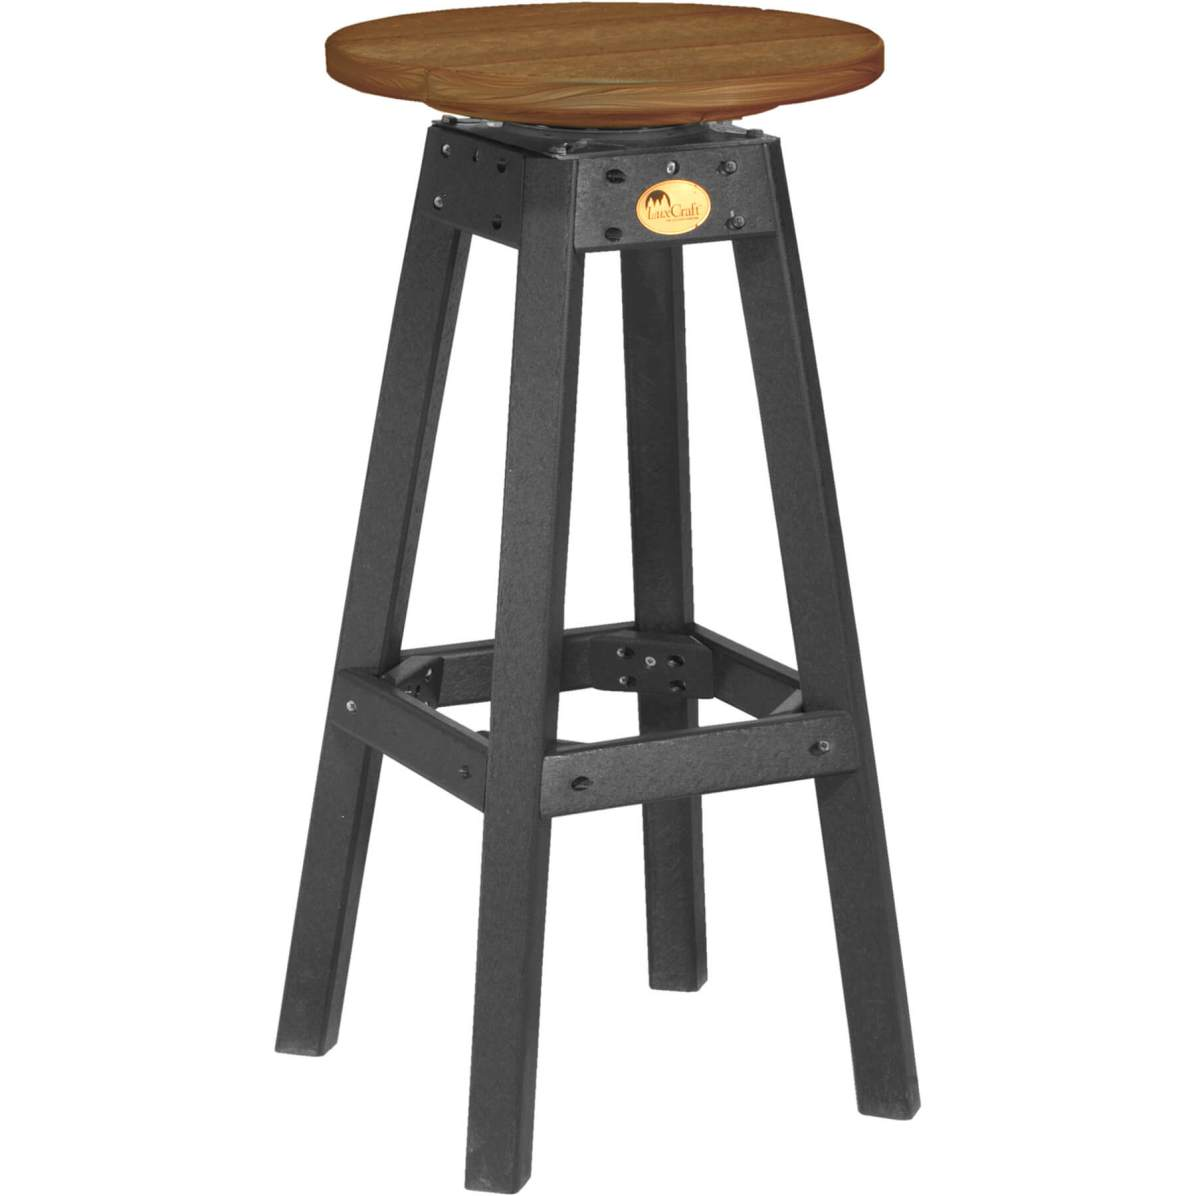 PBSAMB Poly Bar Stool (Antique Mahogany & Black)